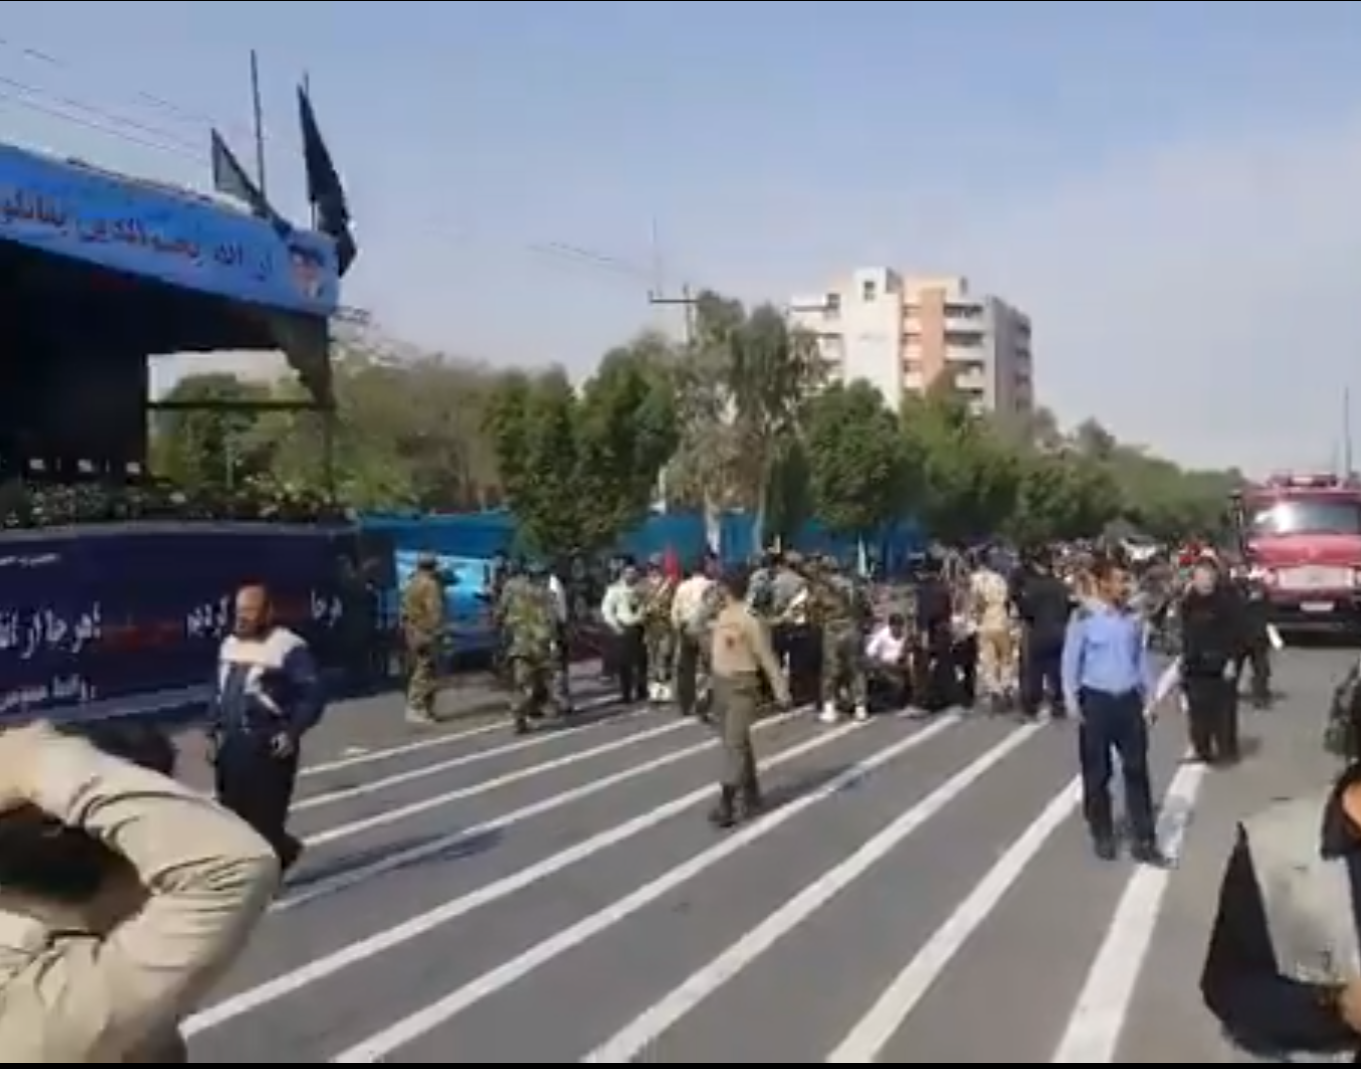 People Killed in Terrorist Attack on Parades in Ahvaz, Southwestern Iran